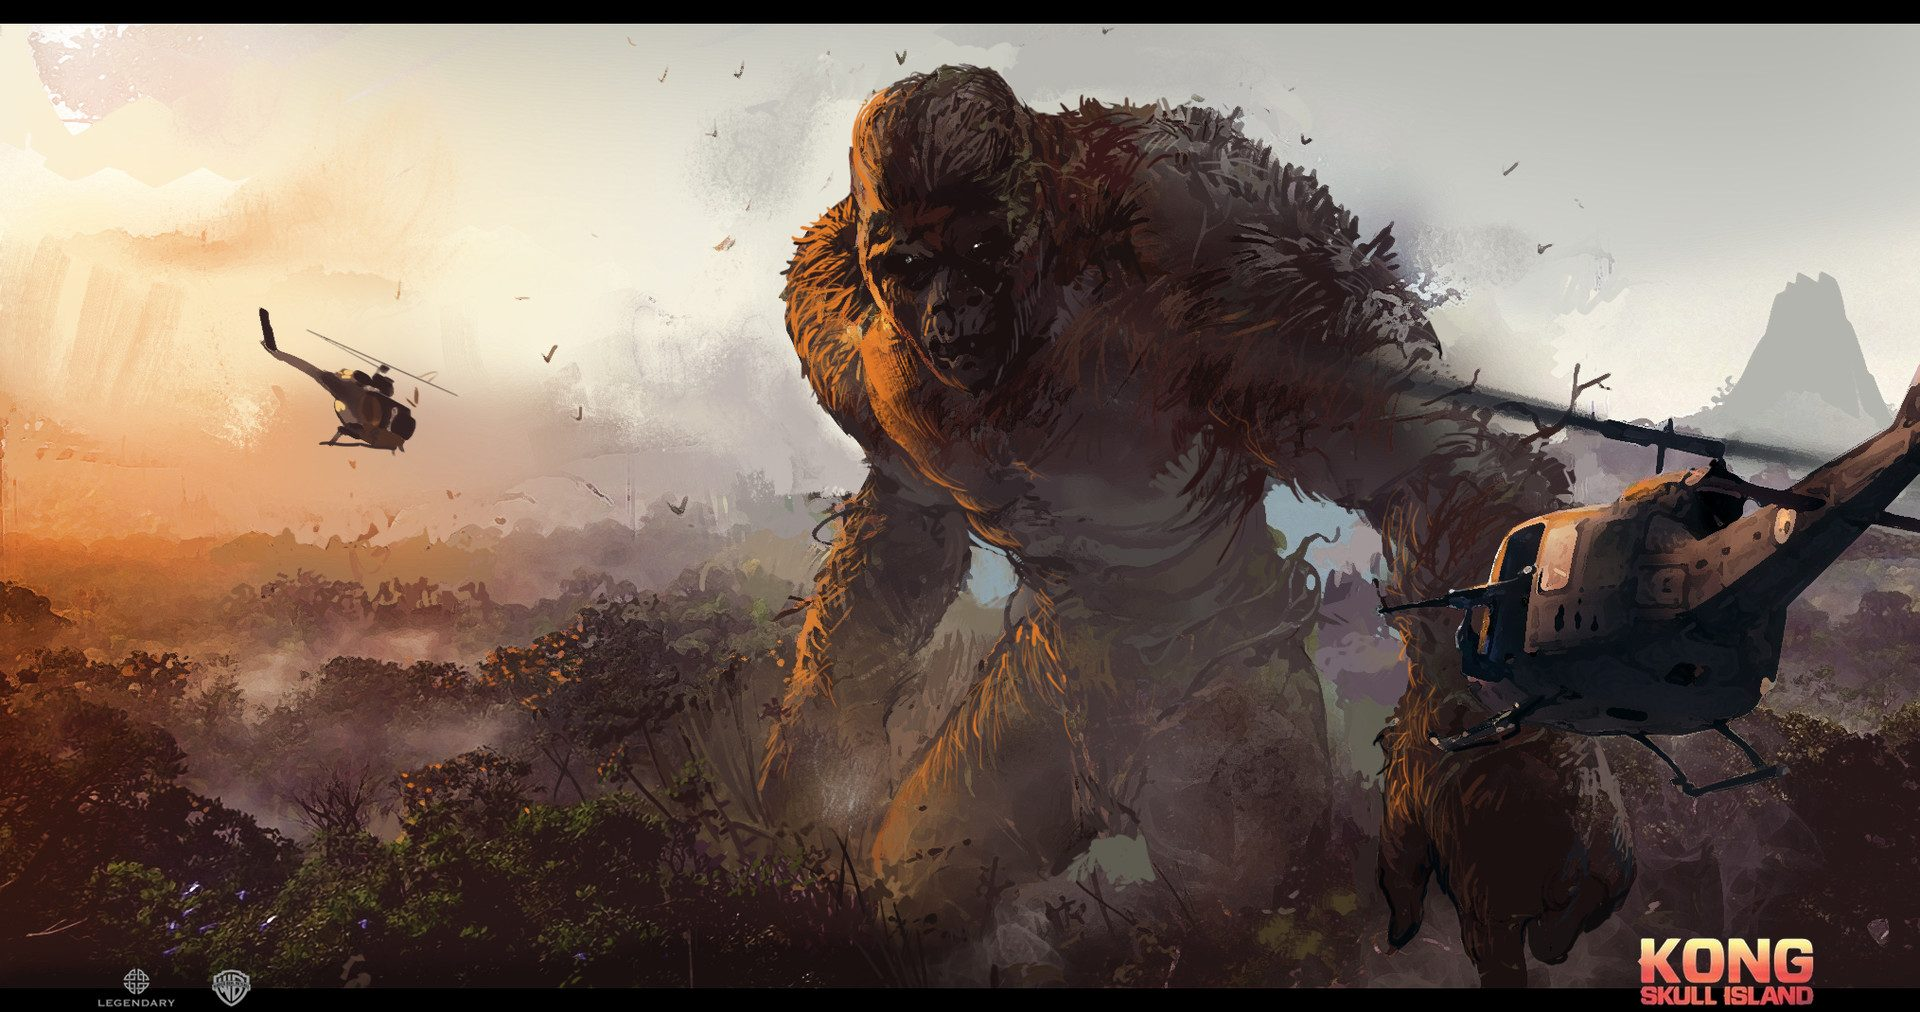 Kong Skull Island Movie Concept Art